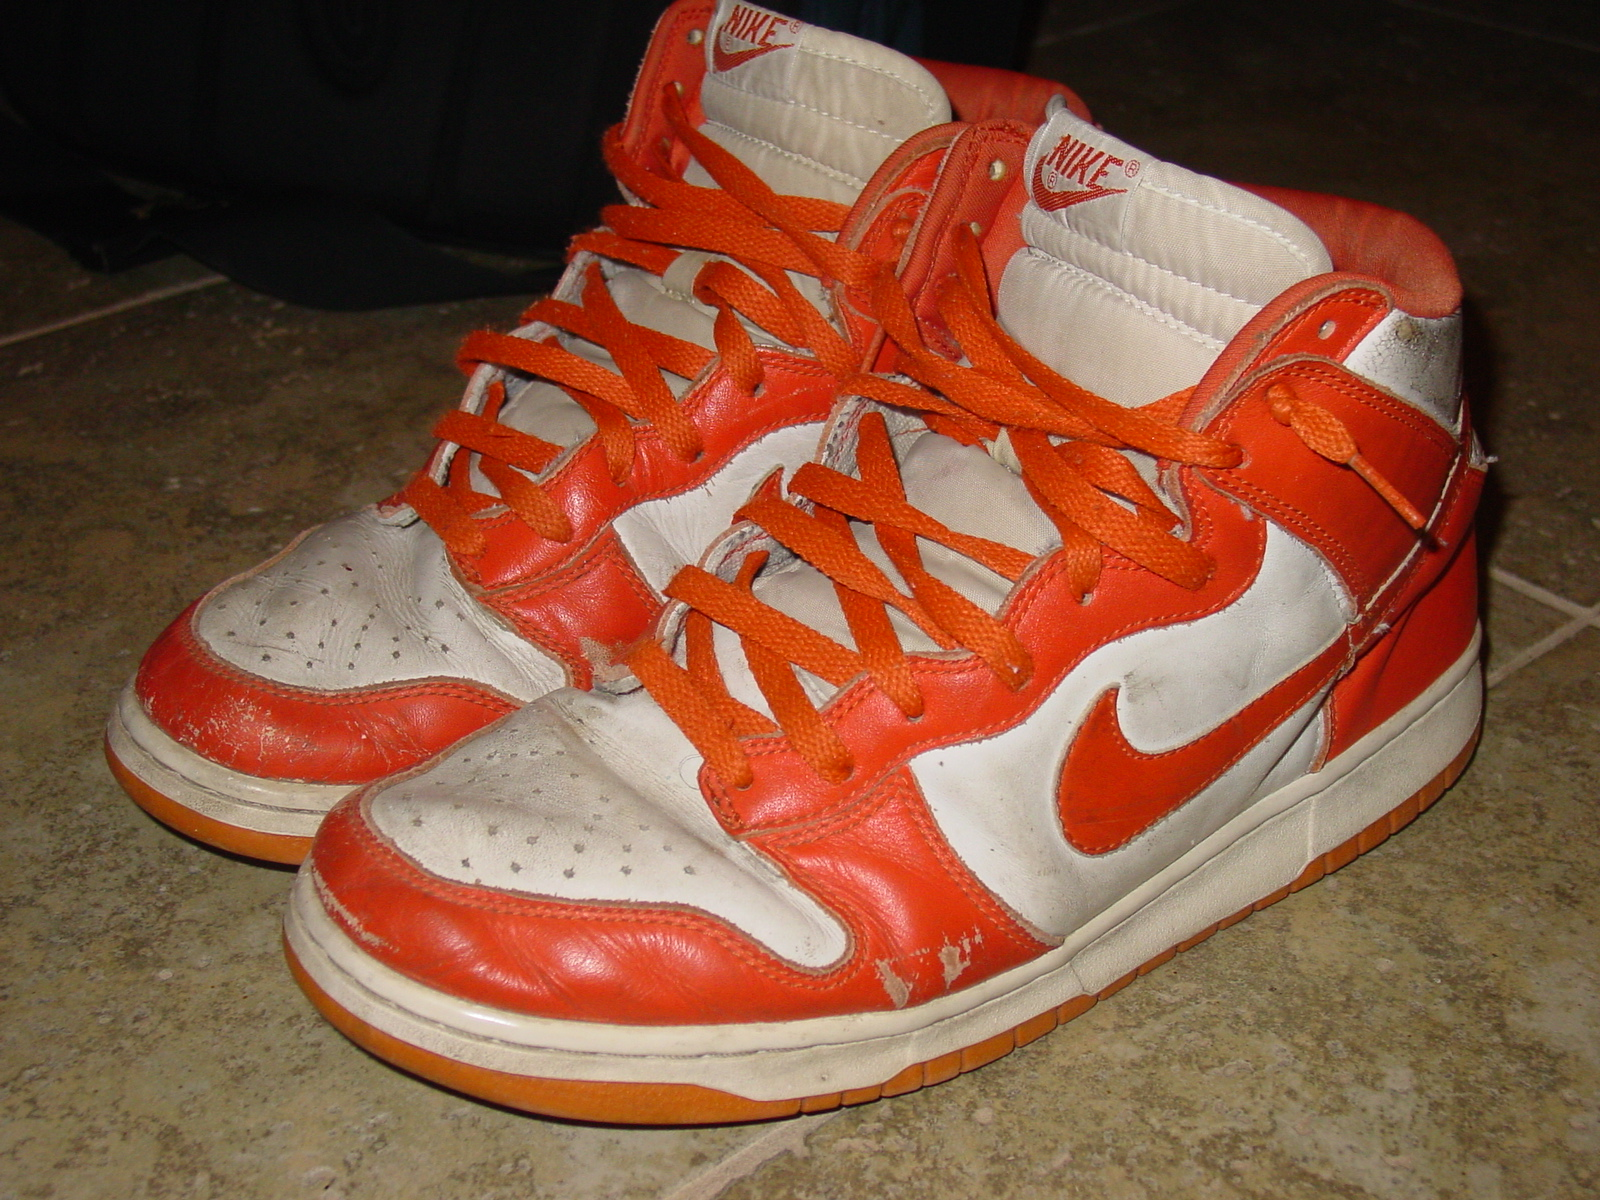 87947a5b24e 1985 nike dunks four decades after the inception of the slam-dunk